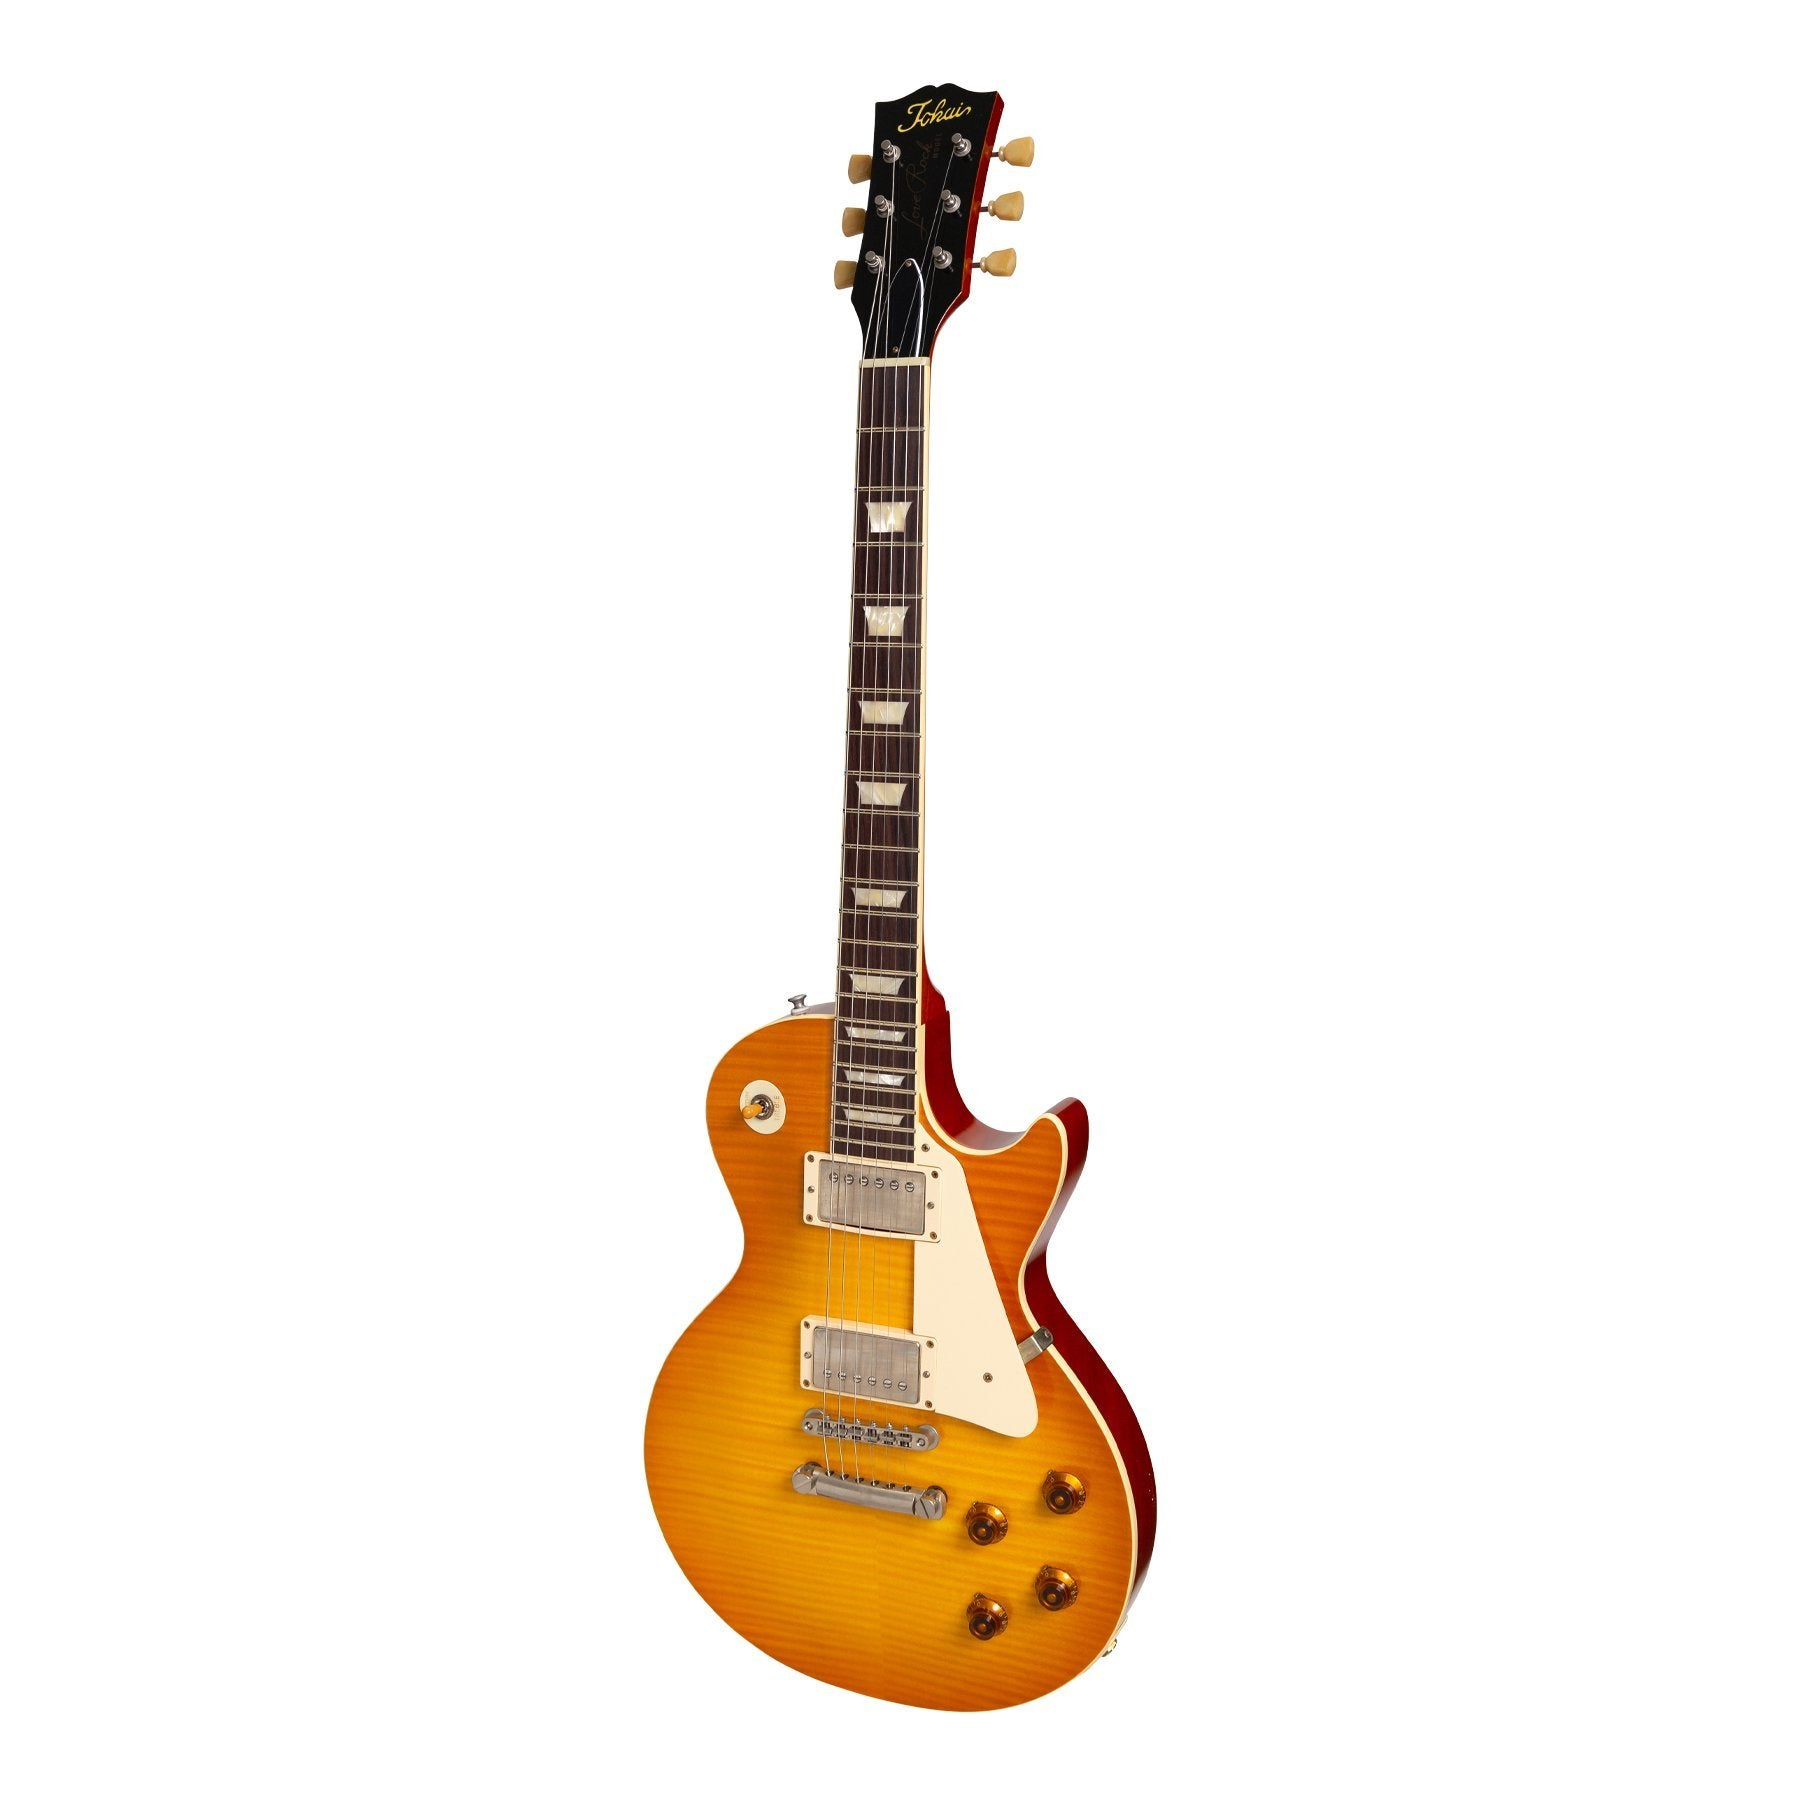 Tokai 'Premium Series' LS-212F AAAA Flame Top LP-Style Electric Guitar (Honey Burst)-LS-212F-C/HB